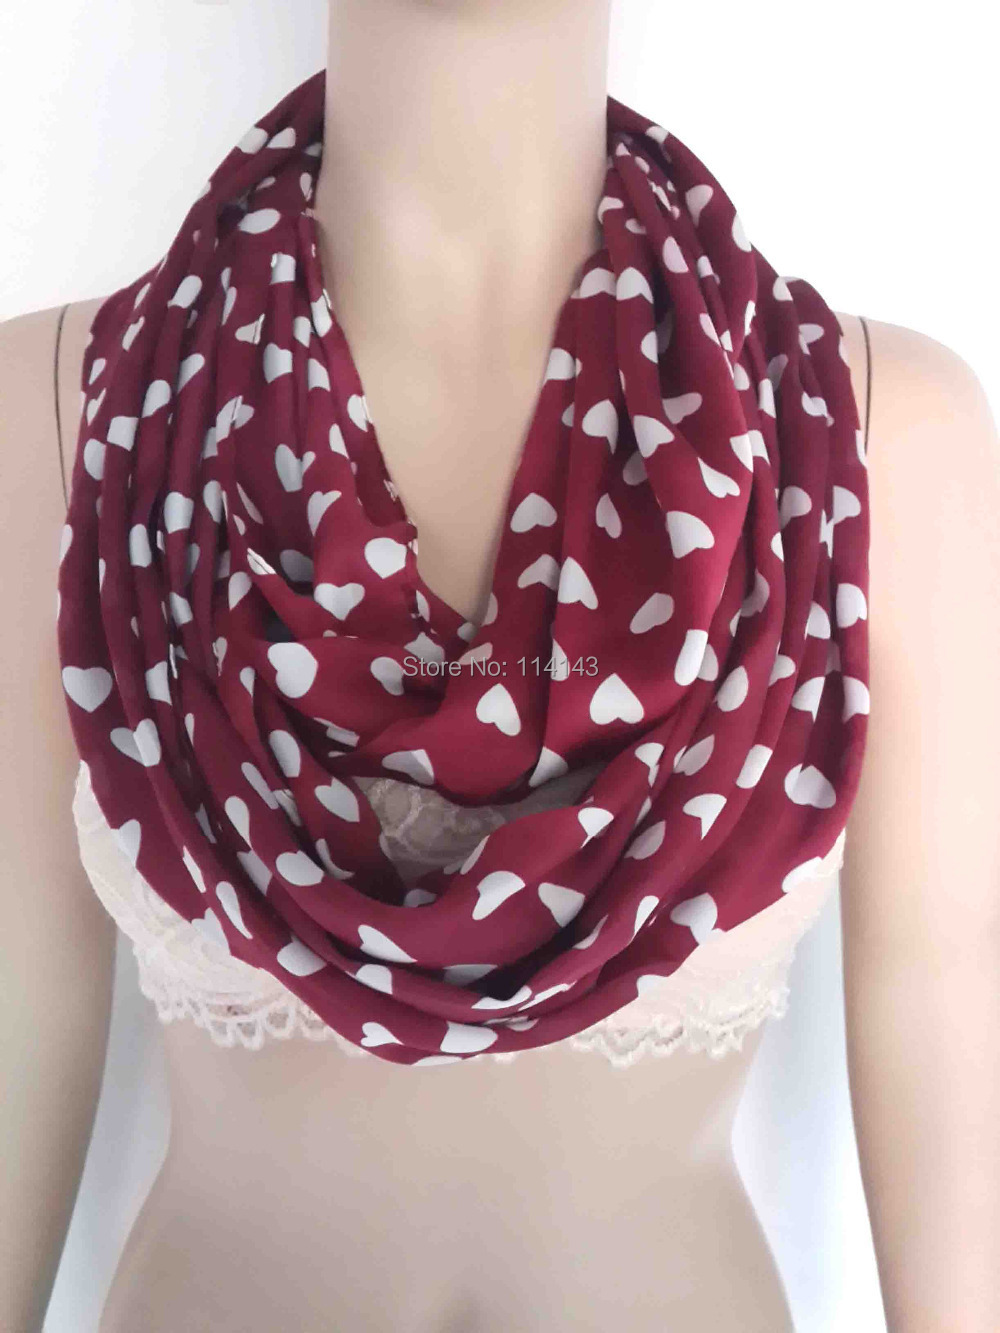 10pcs/lot Love Heart Print Infinity Loop Scarf Silk Feeling Women's Accessories Valentine's Gift, Free Shipping